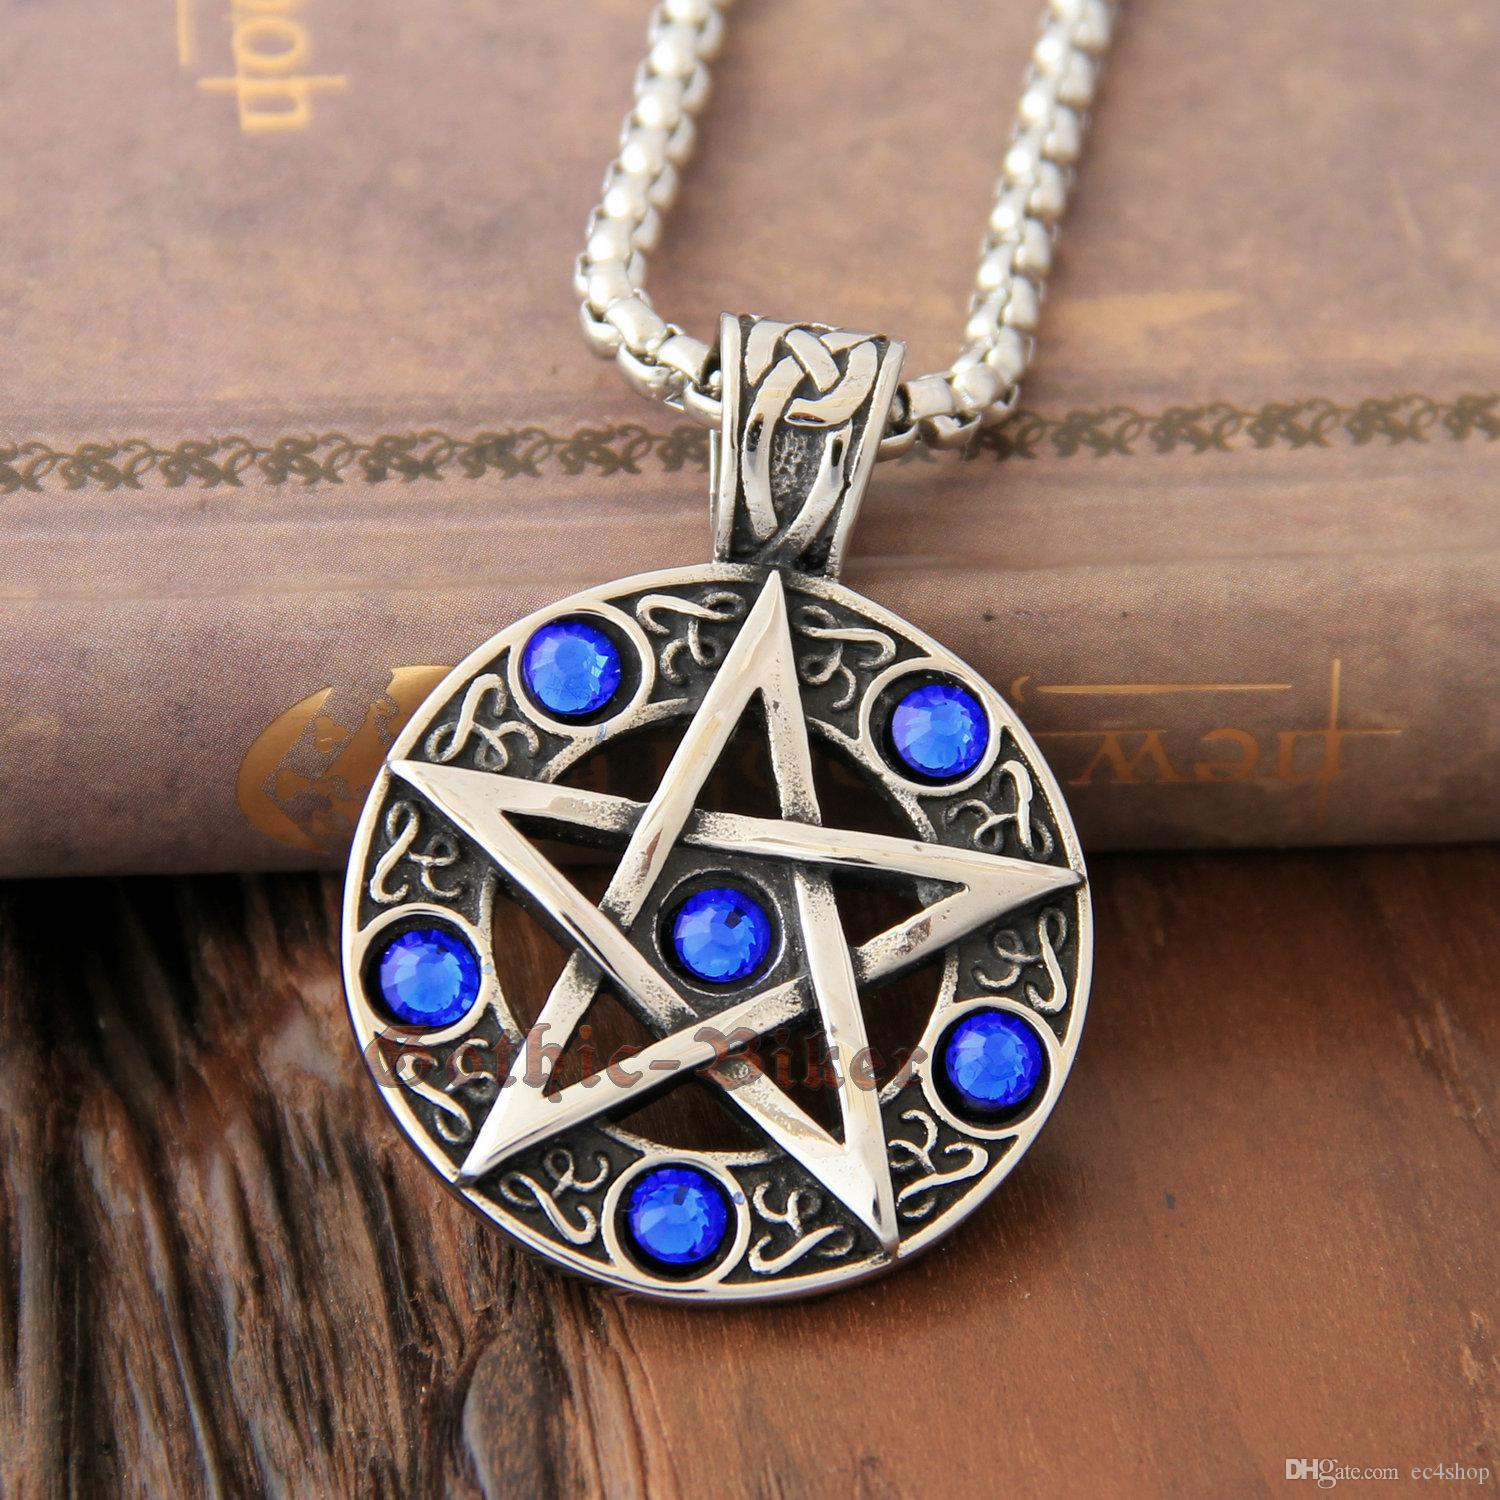 Wholesale celtic wicca pentacle pentagram star blue cz stones wholesale celtic wicca pentacle pentagram star blue cz stones stainless steel pendant witch and wizard magic witchcraft charm necklace charms charms for aloadofball Image collections